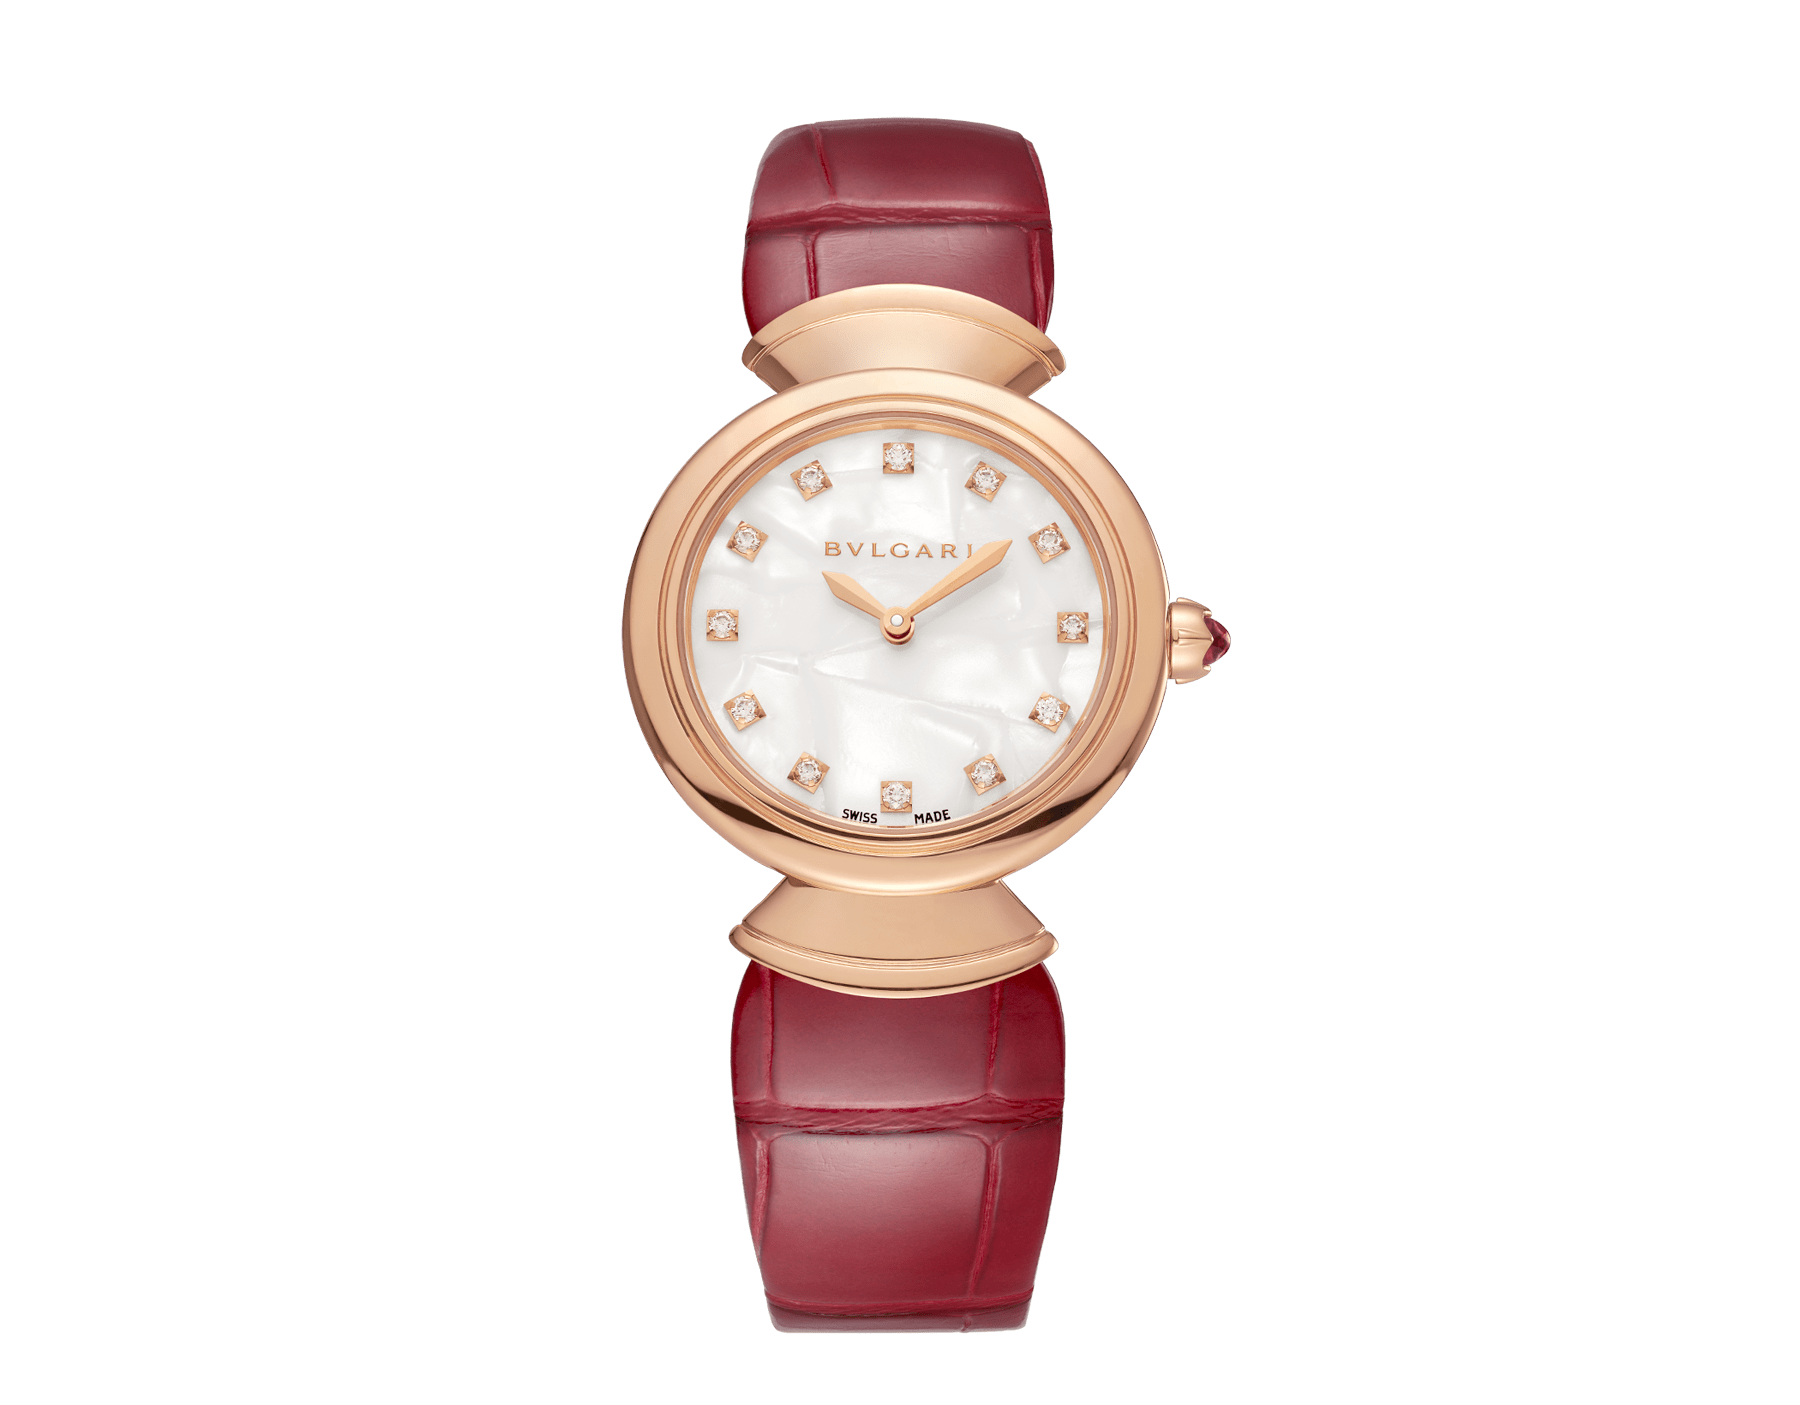 DIVAS' DREAM watch with 18 kt rose gold case, white acetate dial set with diamond indexes and red alligator bracelet. 102840 image 1